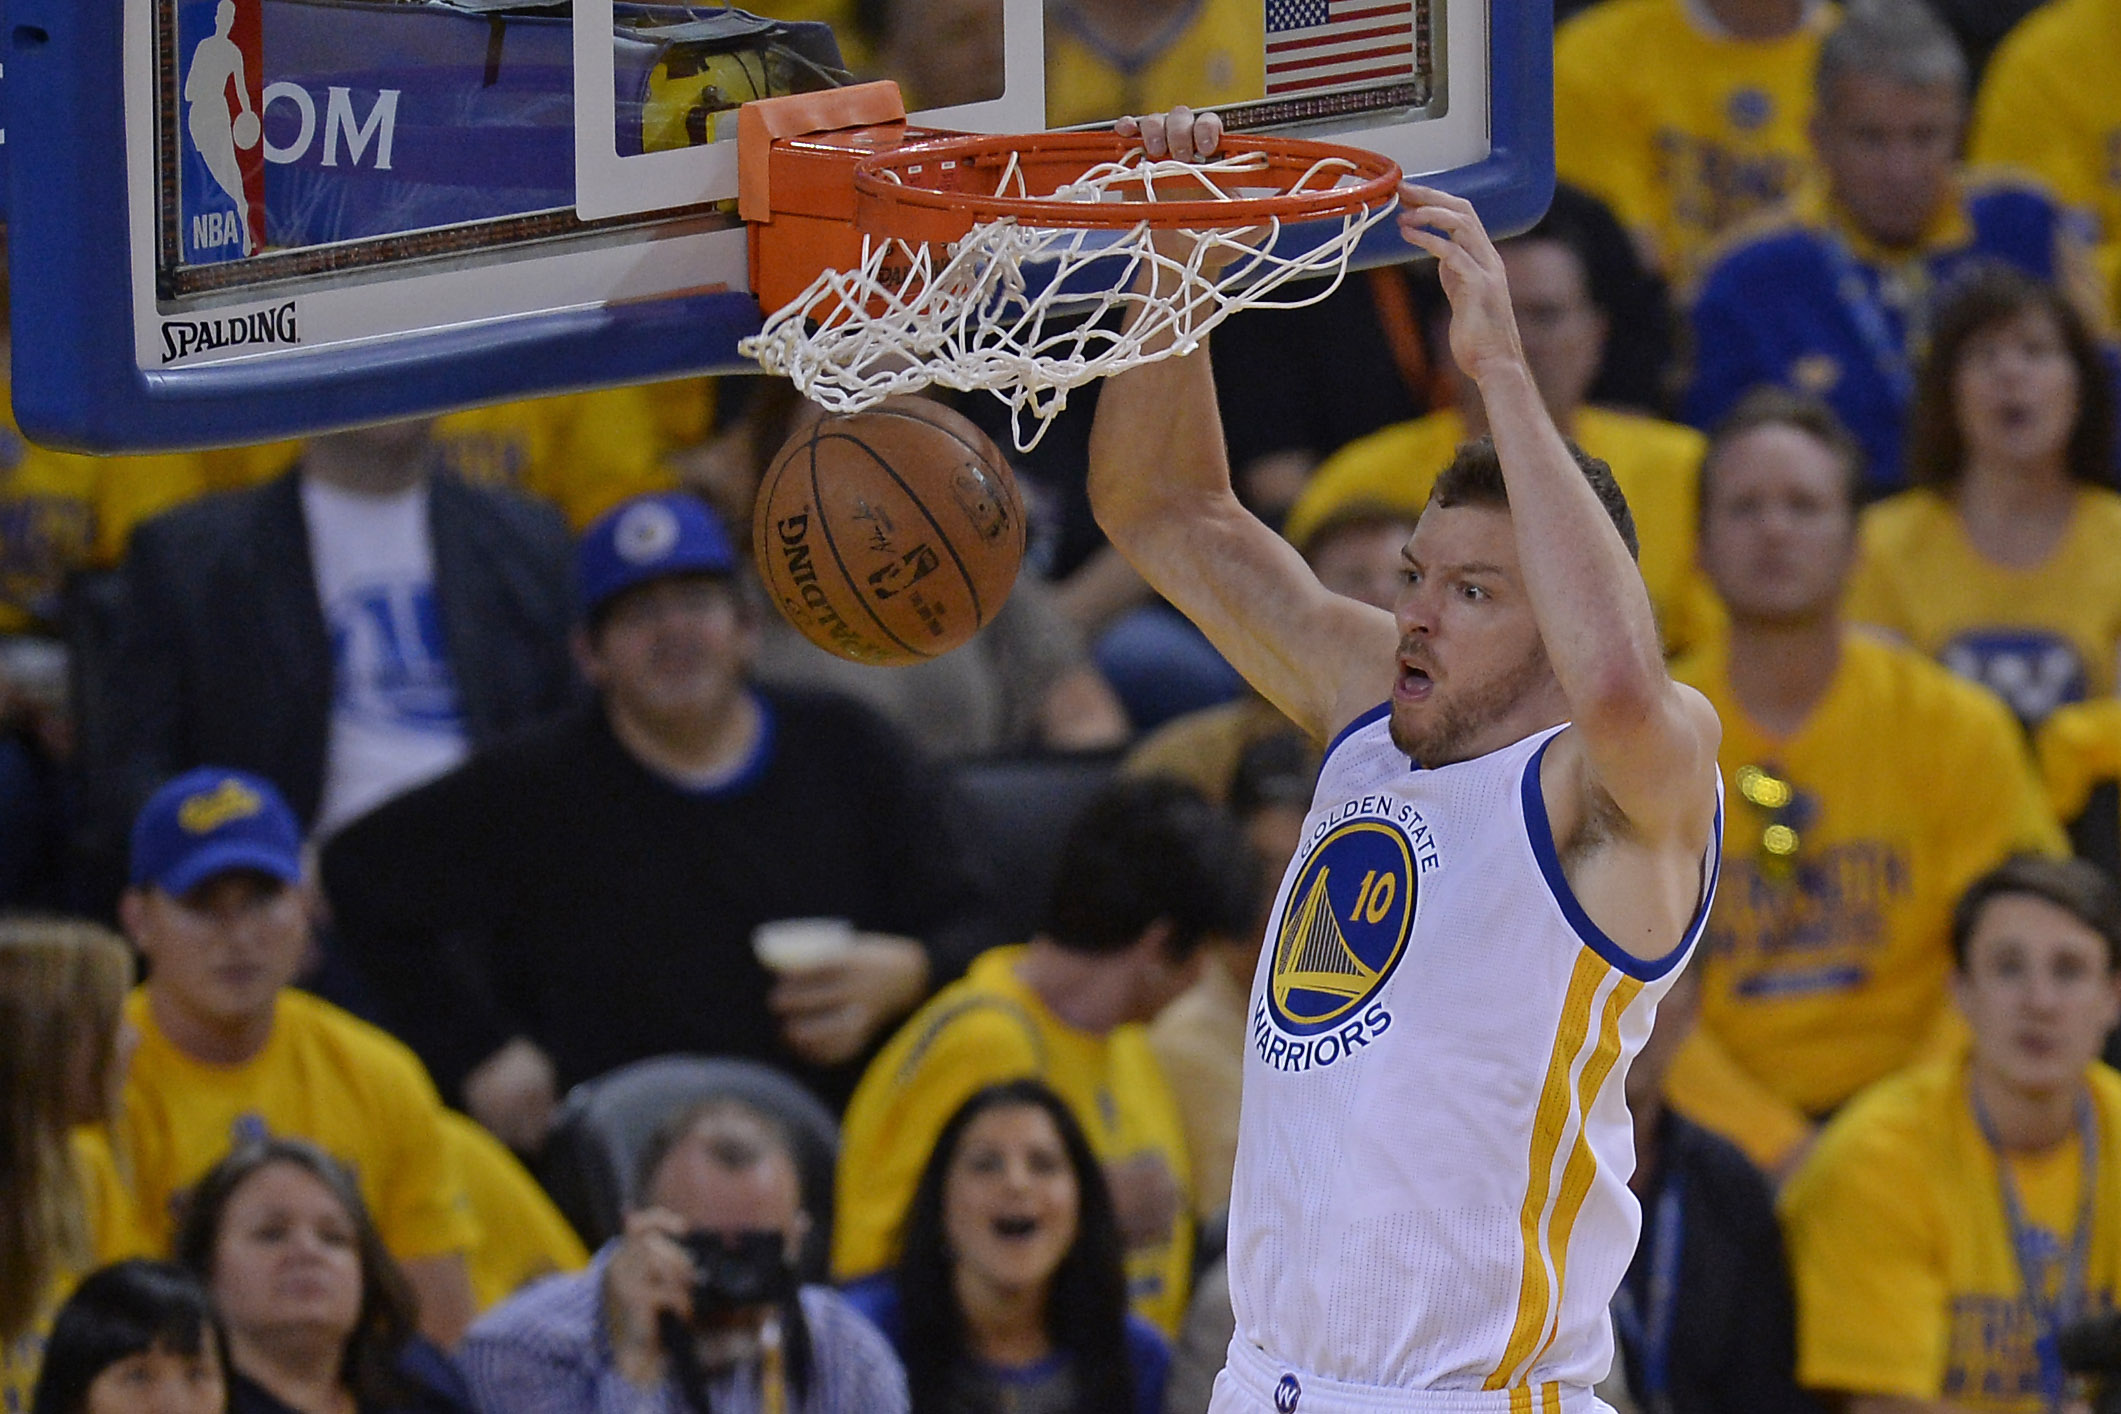 All-Star big man David Lee helped set up the Golden State Warriors' dynasty when he joined the team in 2010. What is Lee doing in retirement?